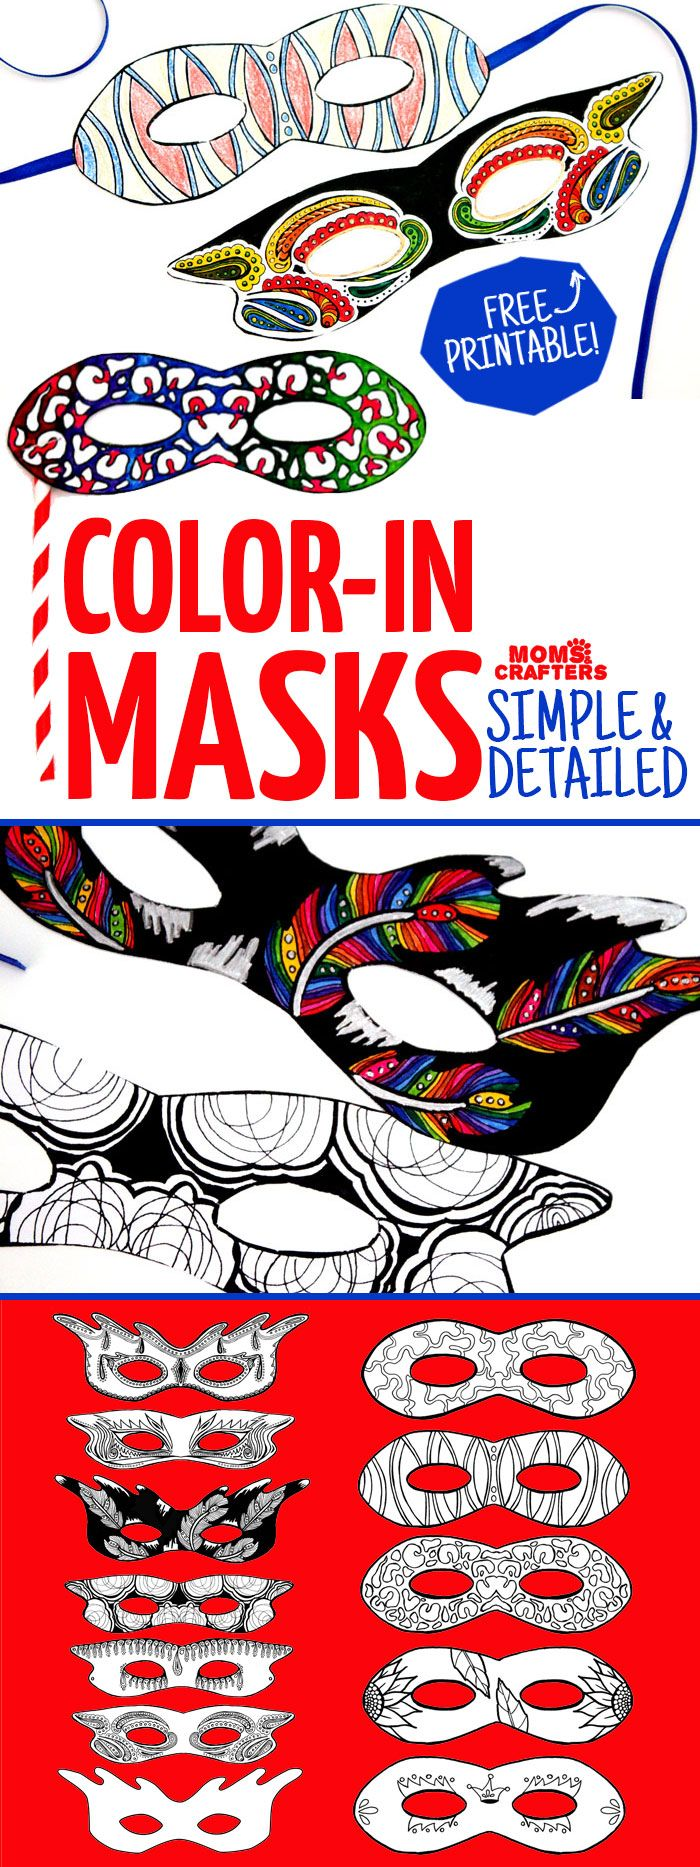 free coloring pages mardi gras : Do You Love Adult Coloring Pages But Want Something Functional Grab These Color In Masks